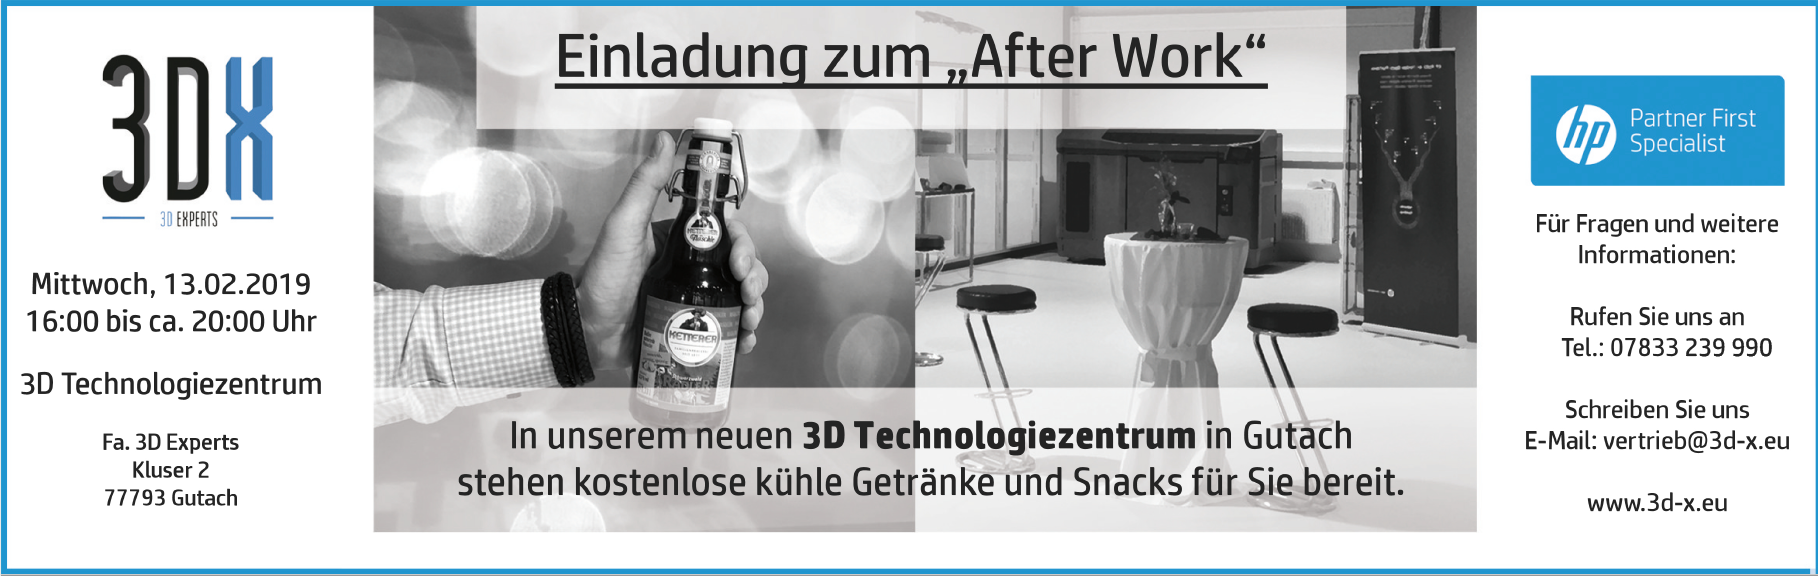 After Work Einladung